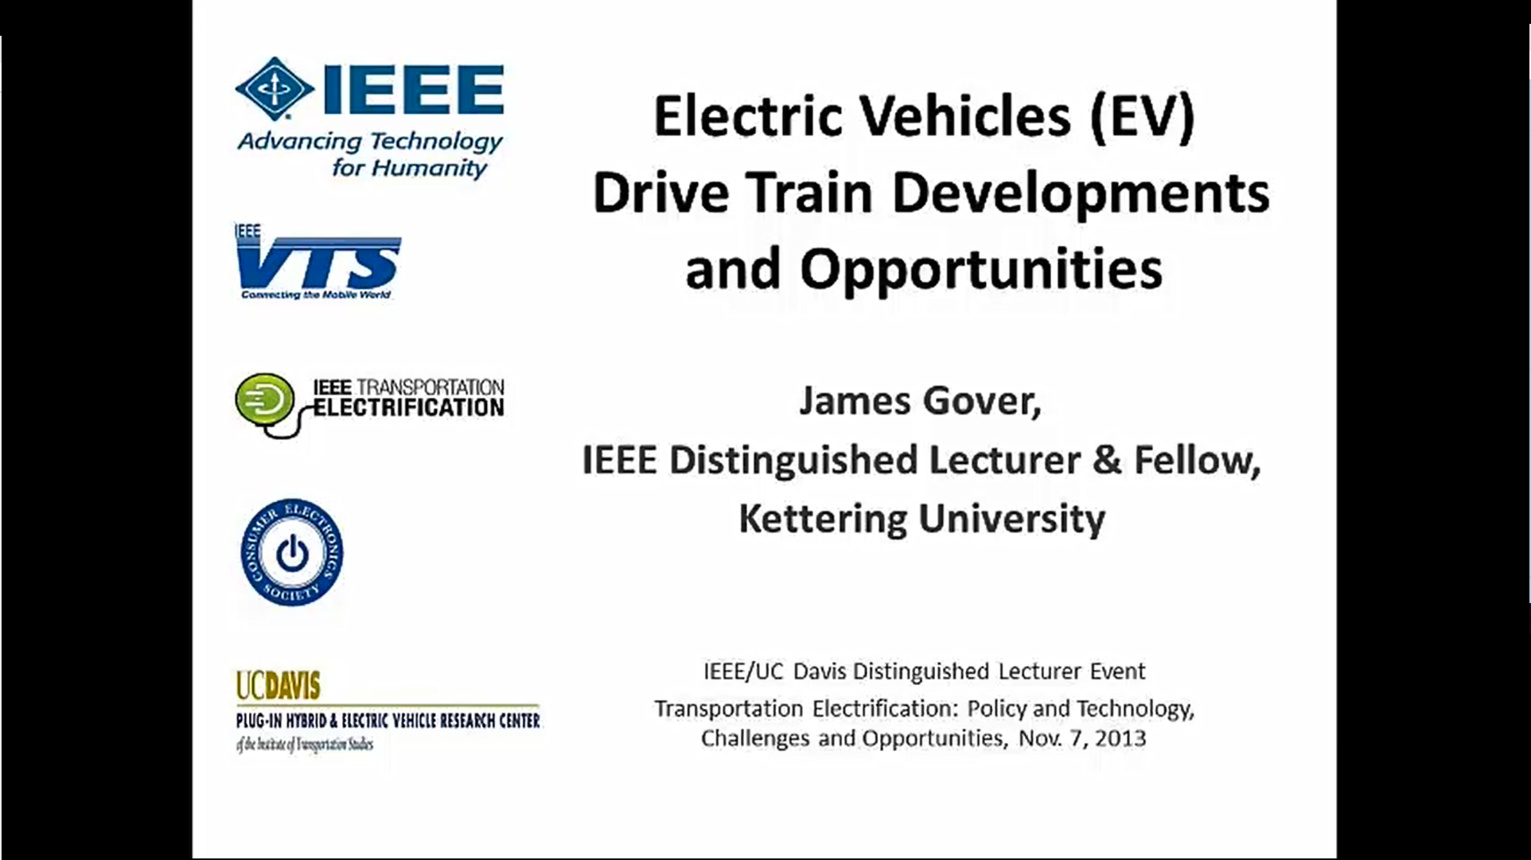 Drive Train Developments and Opportunities: Power Electronics, Semiconductors & Electric Machines